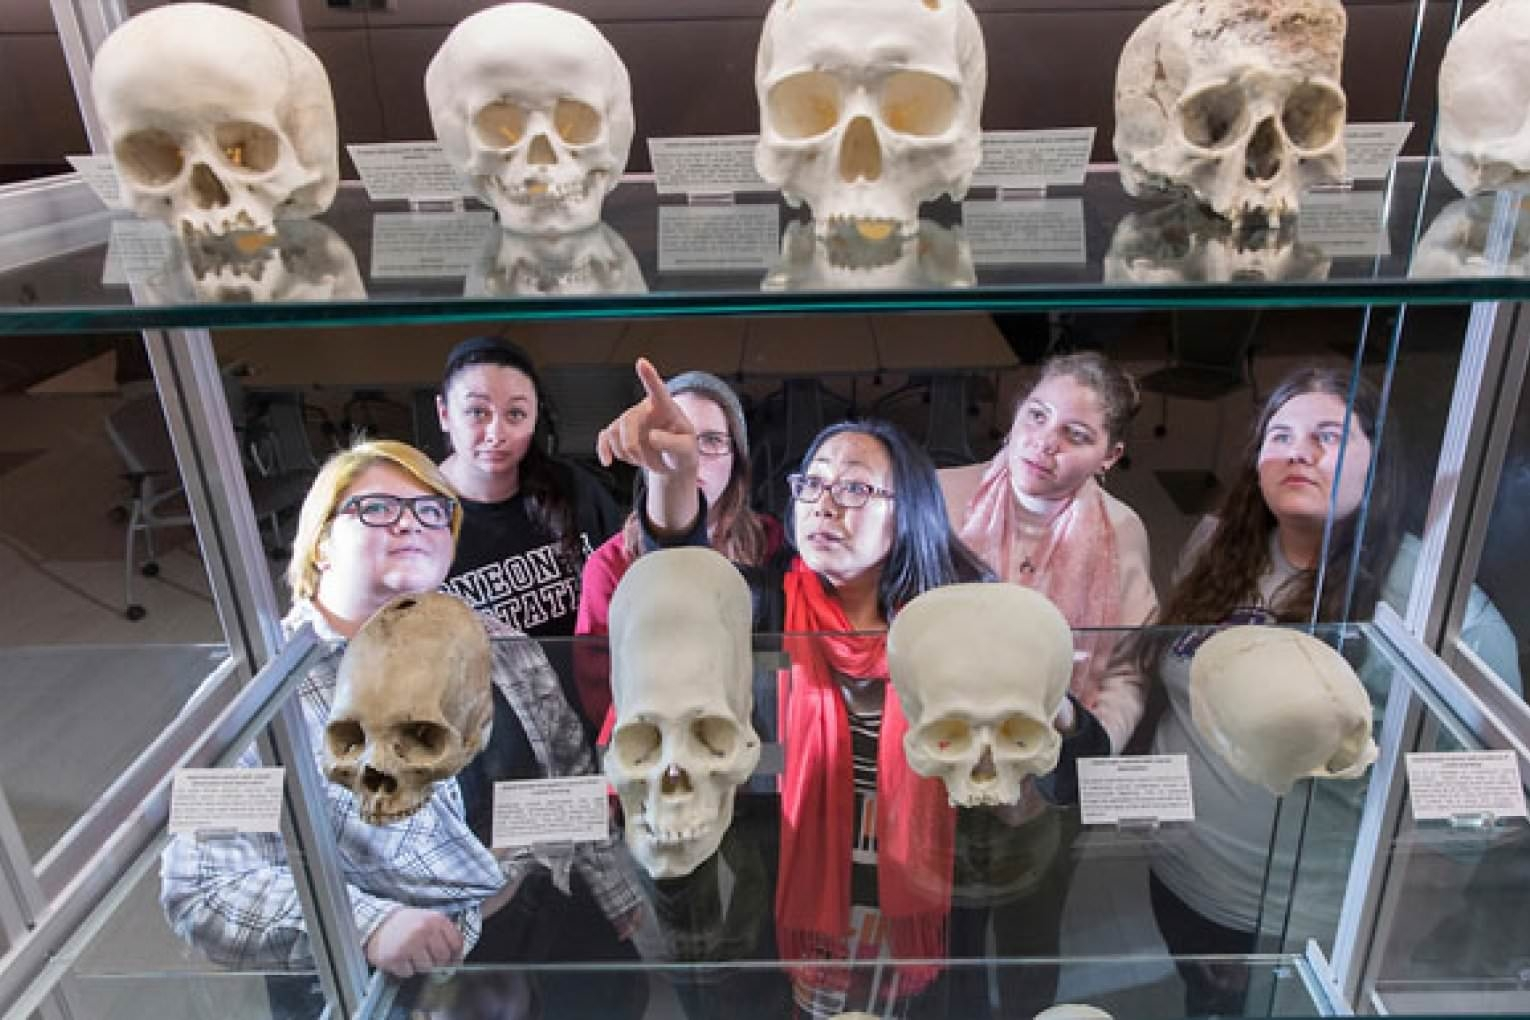 Sallie Han, associate professor of anthropology, and students in her Exhibiting Cultures in Museums course